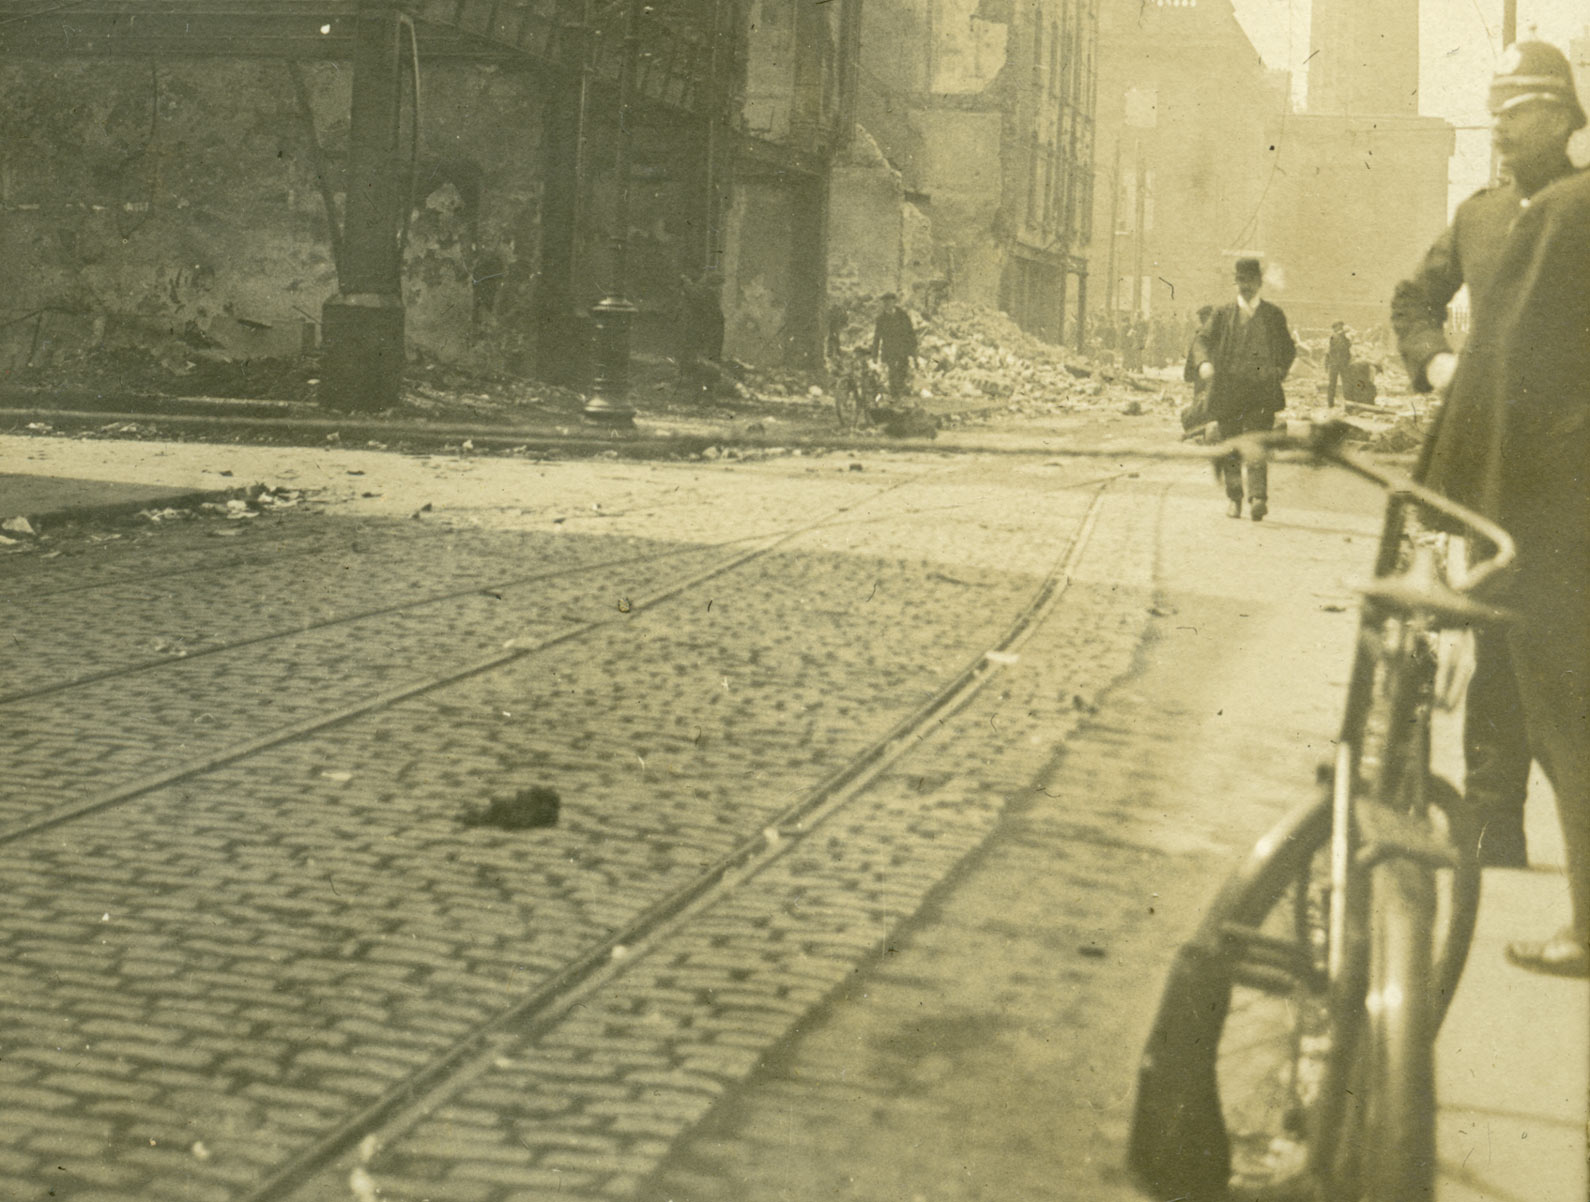 Police officer on duty in the days after the Easter Rising was suppressed